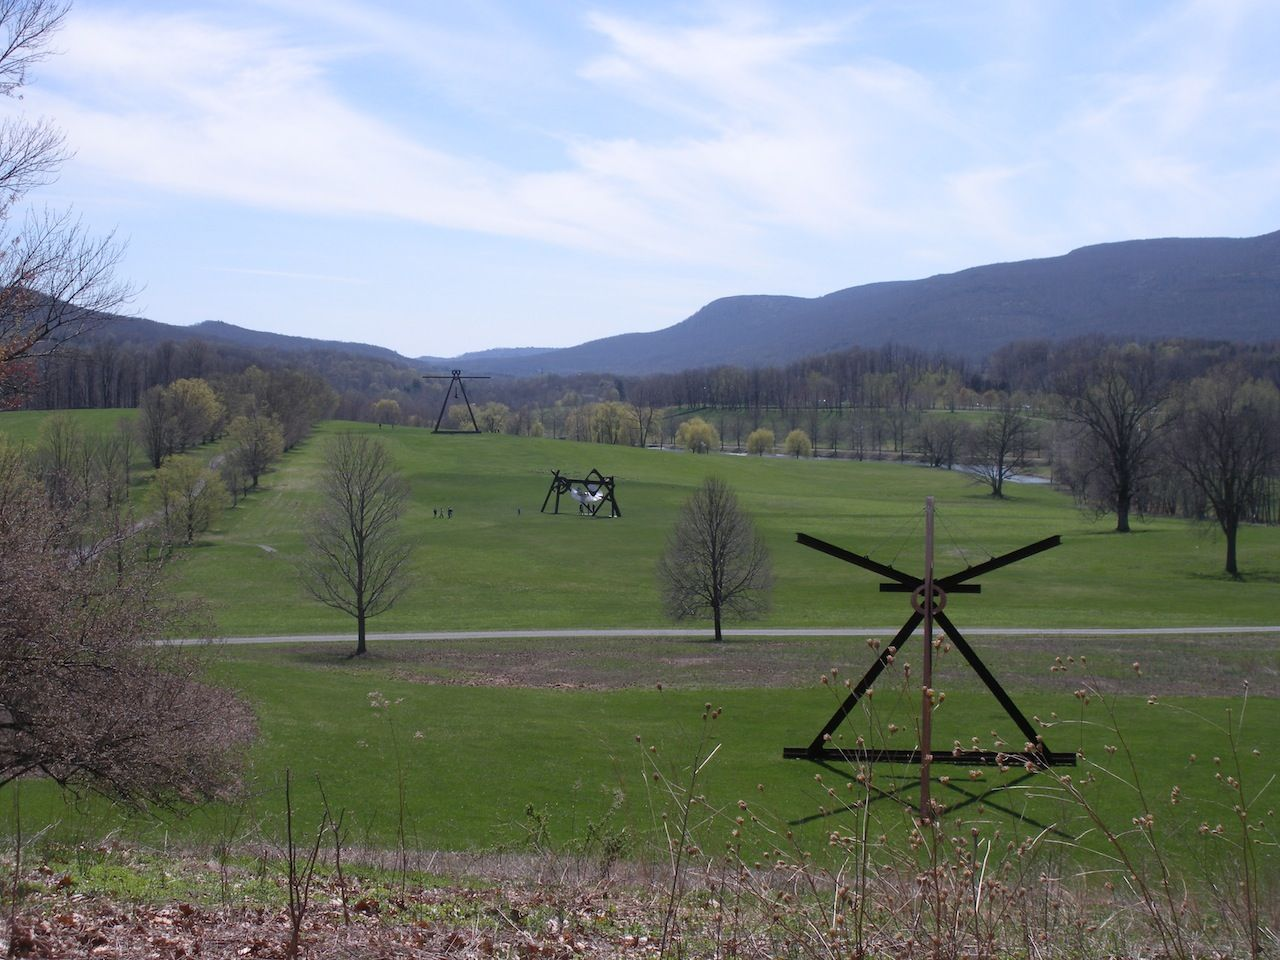 An artist residency is coming to storm king with images